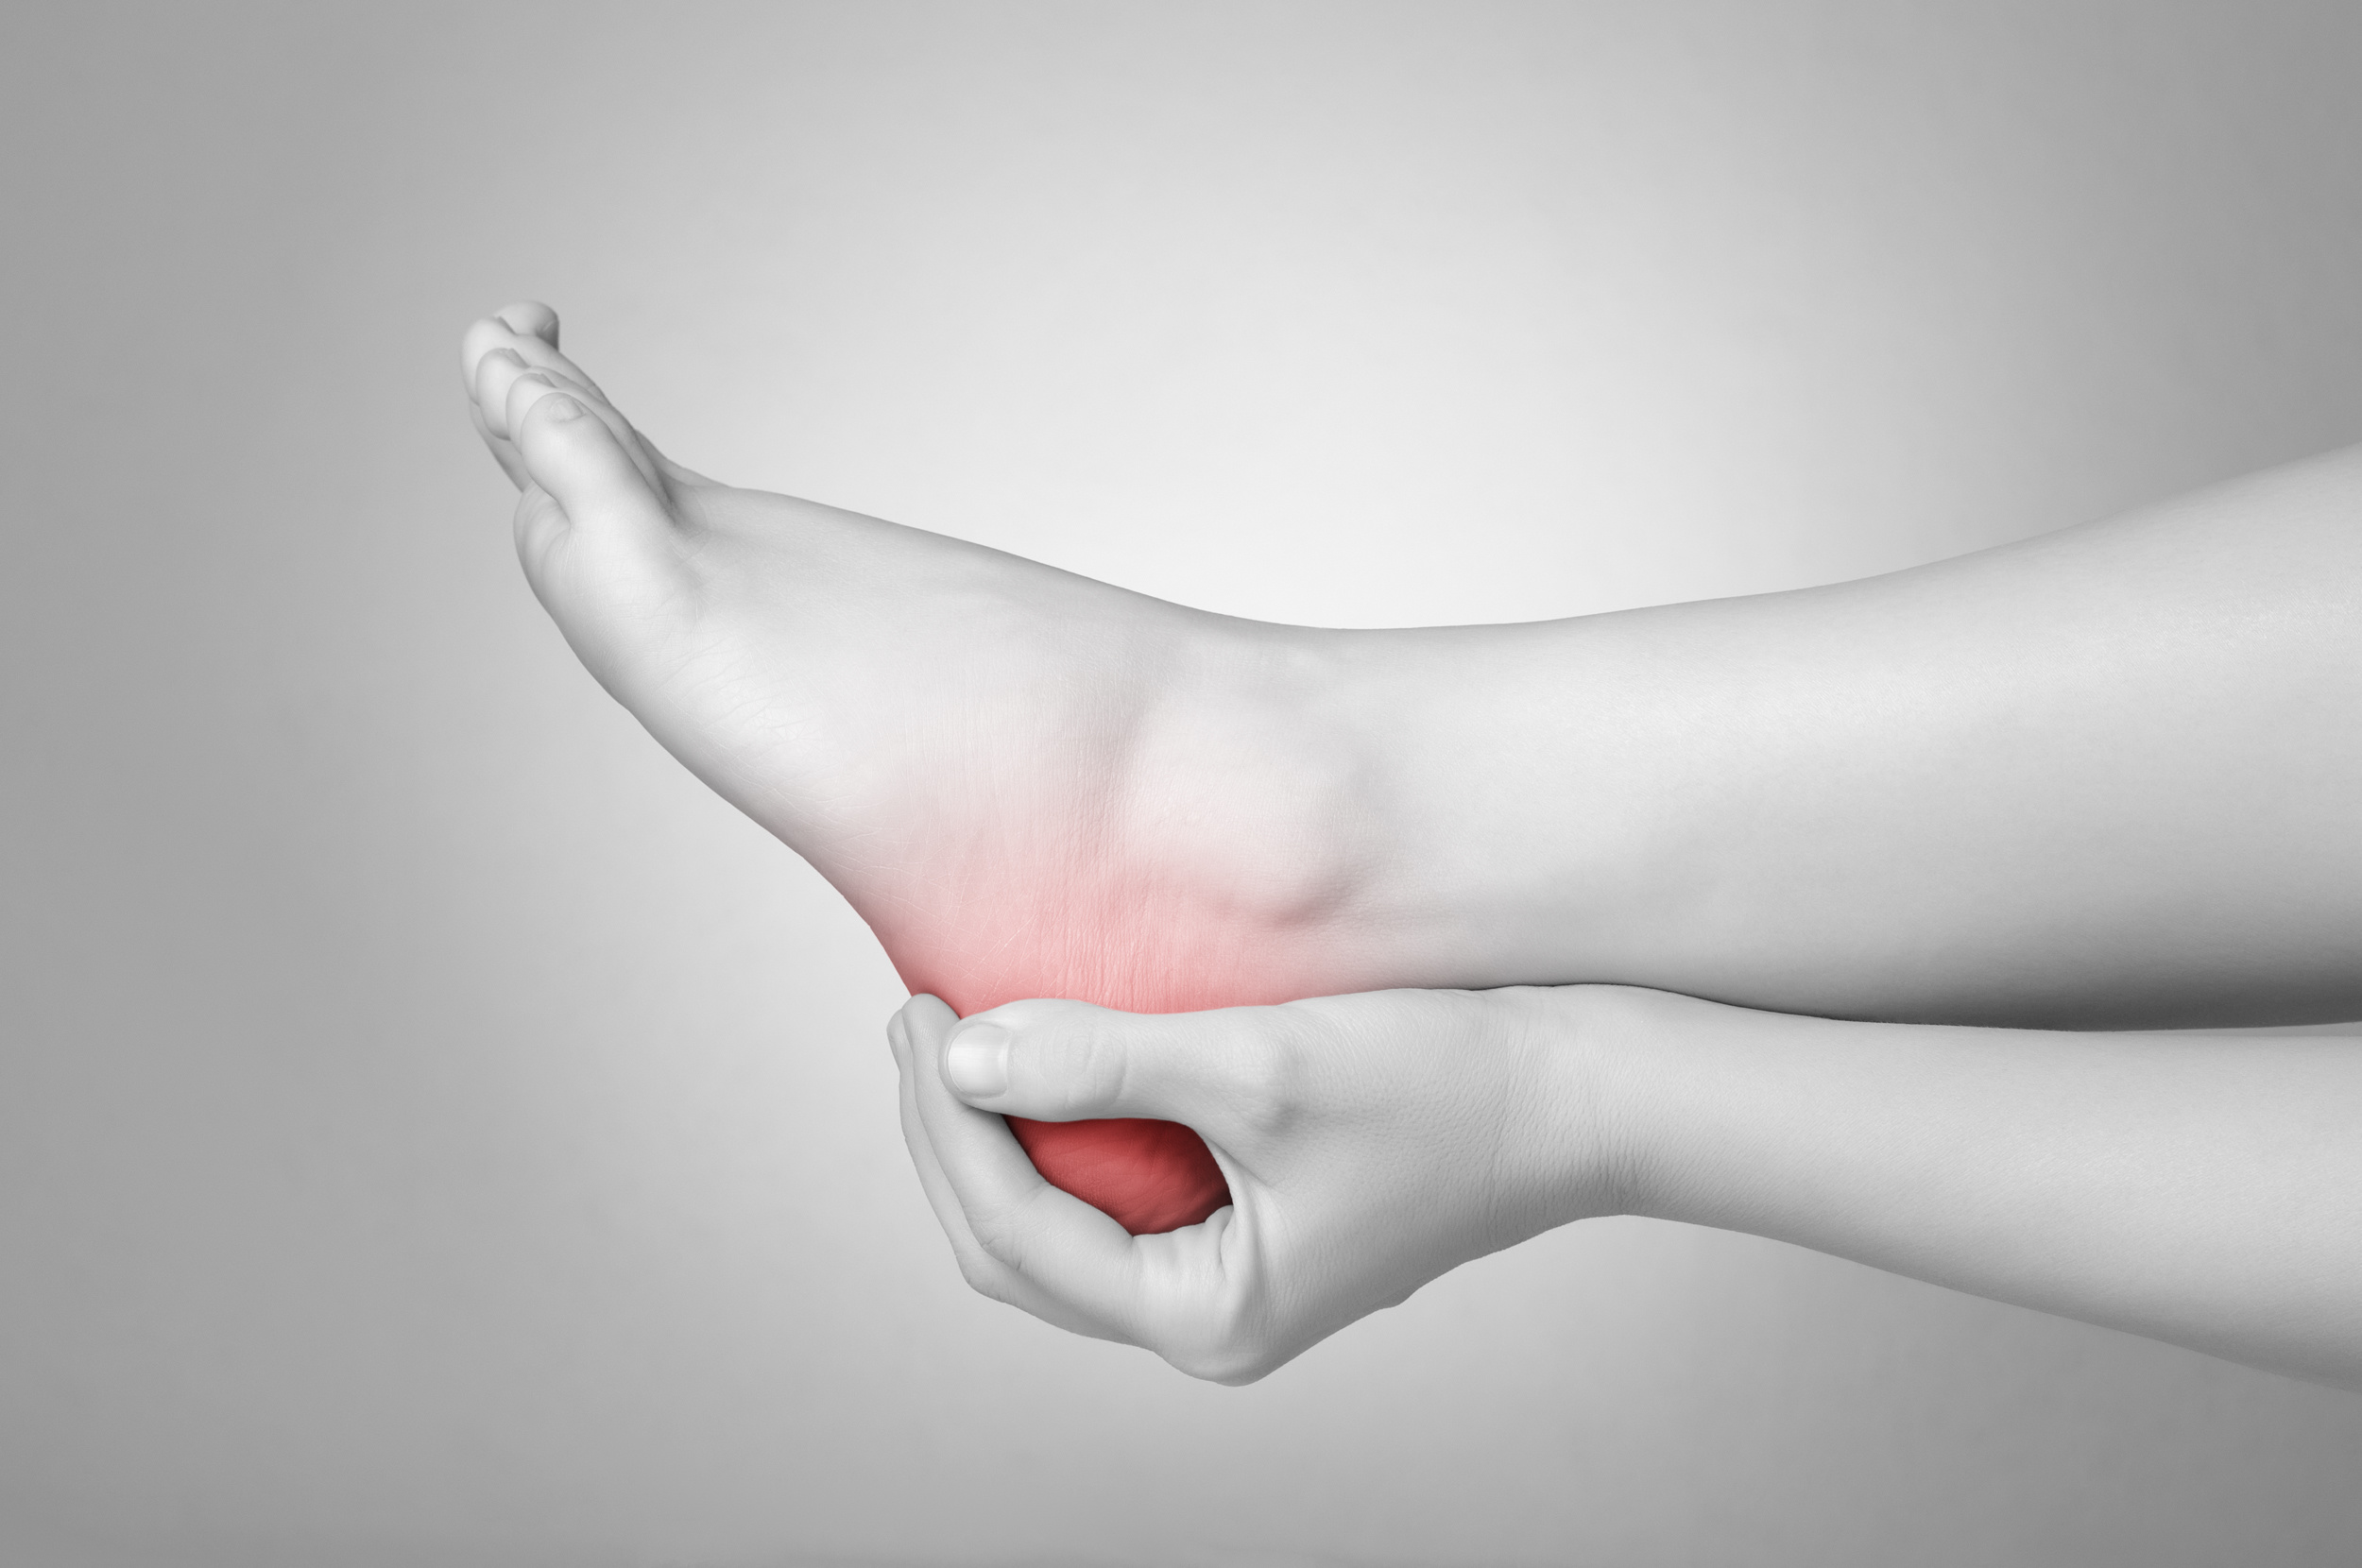 Heel pain is common with increased activity levels